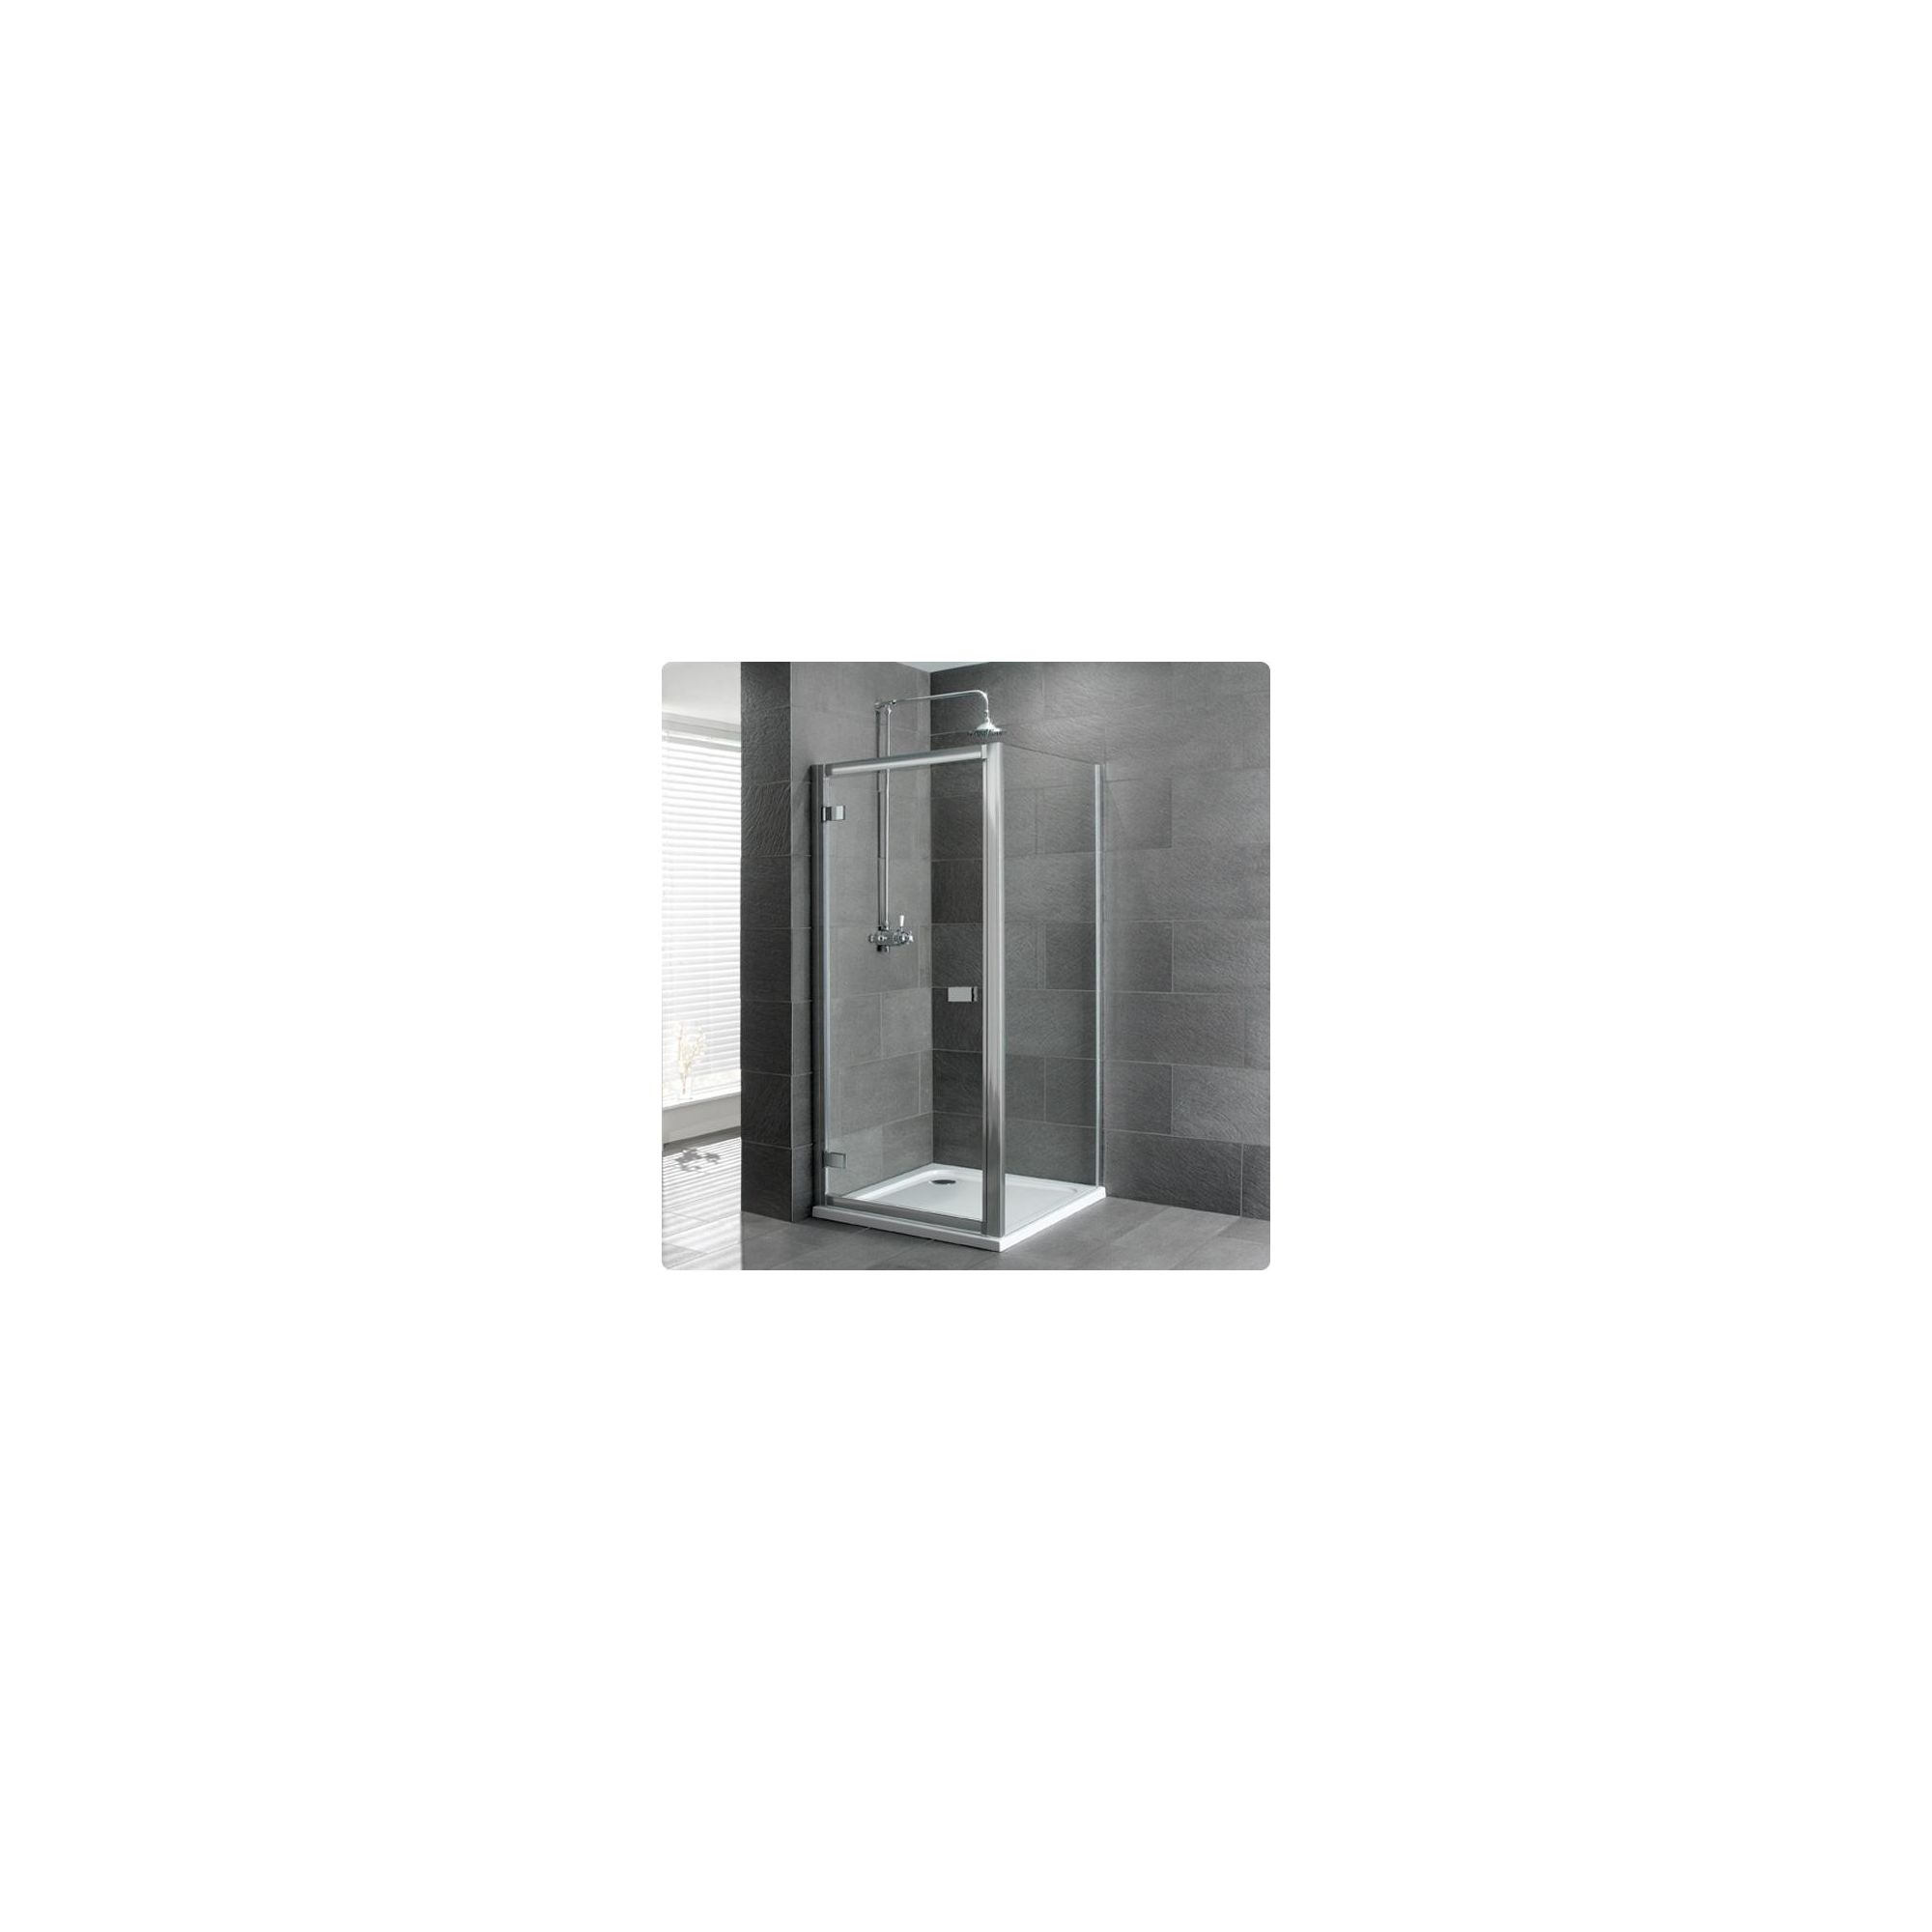 Duchy Select Silver Hinged Door Shower Enclosure, 700mm x 700mm, Standard Tray, 6mm Glass at Tescos Direct